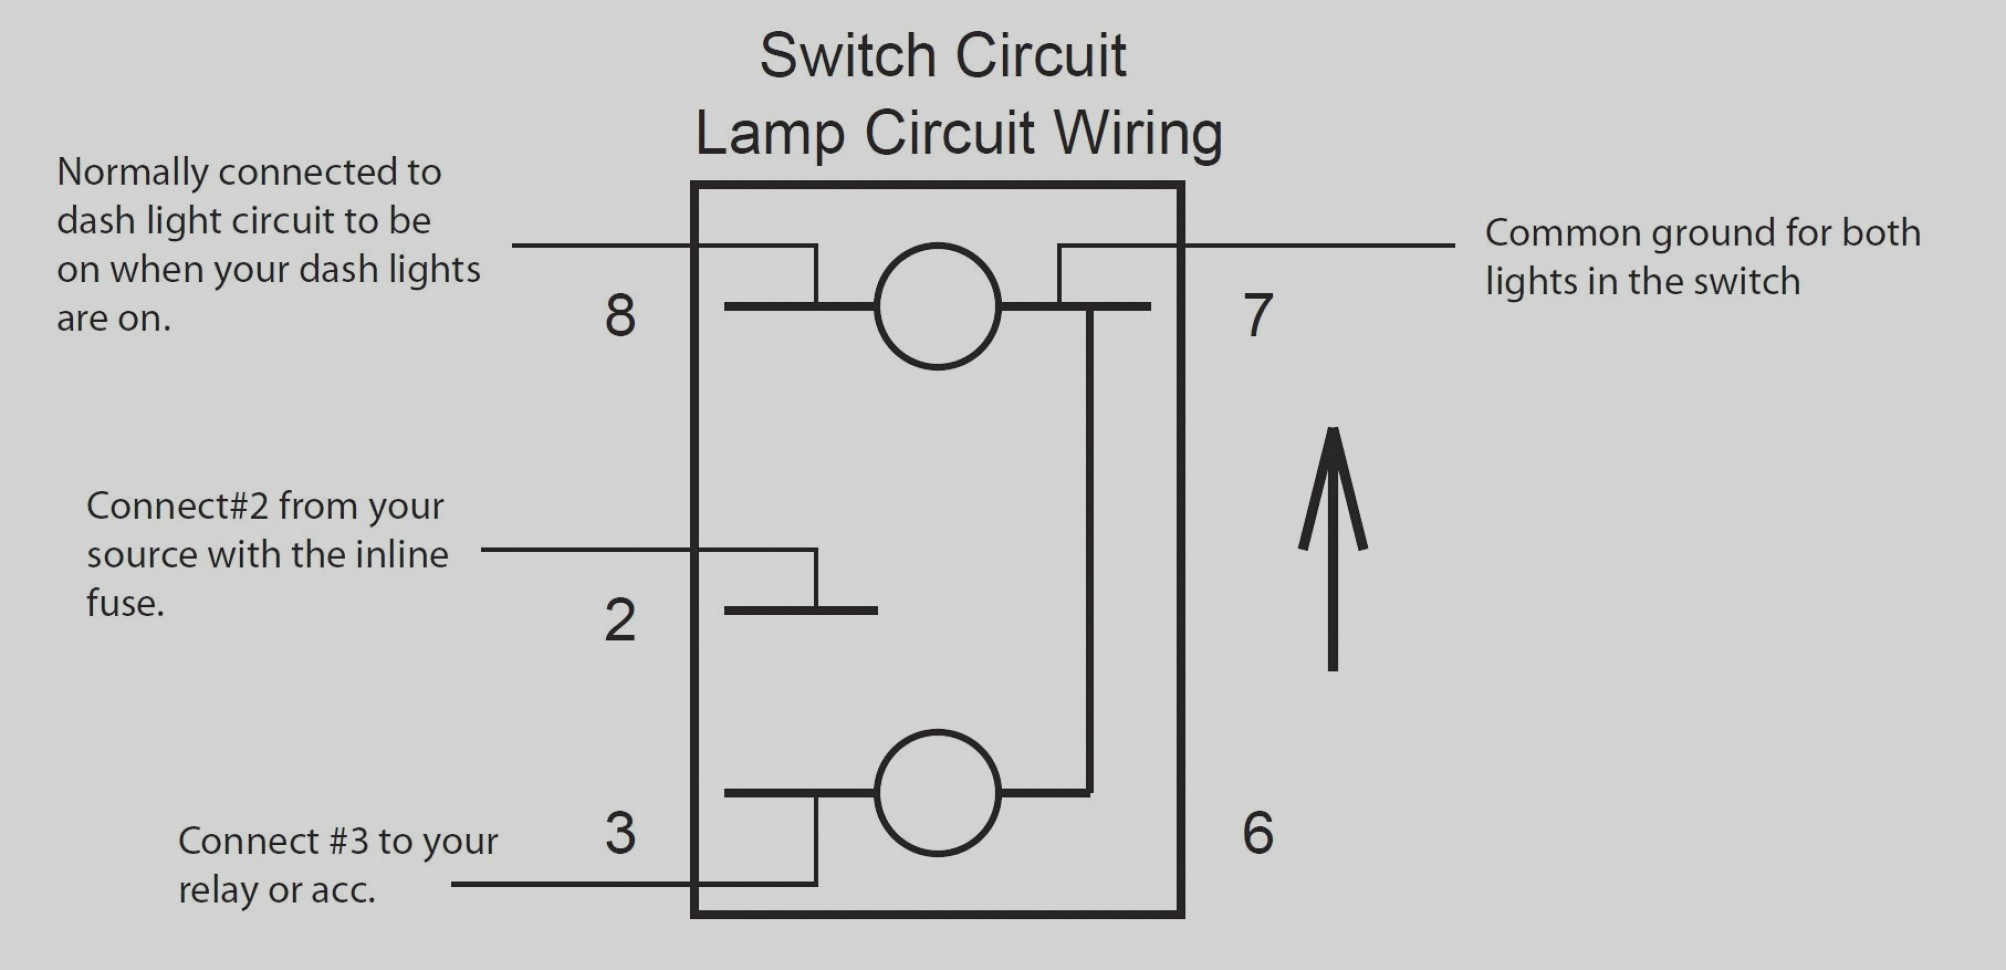 Shop Vac Switch Wiring Diagram New Image Schematic Beautiful 3 Pole Rocker Diagrams Rh Sidonline Info Manual